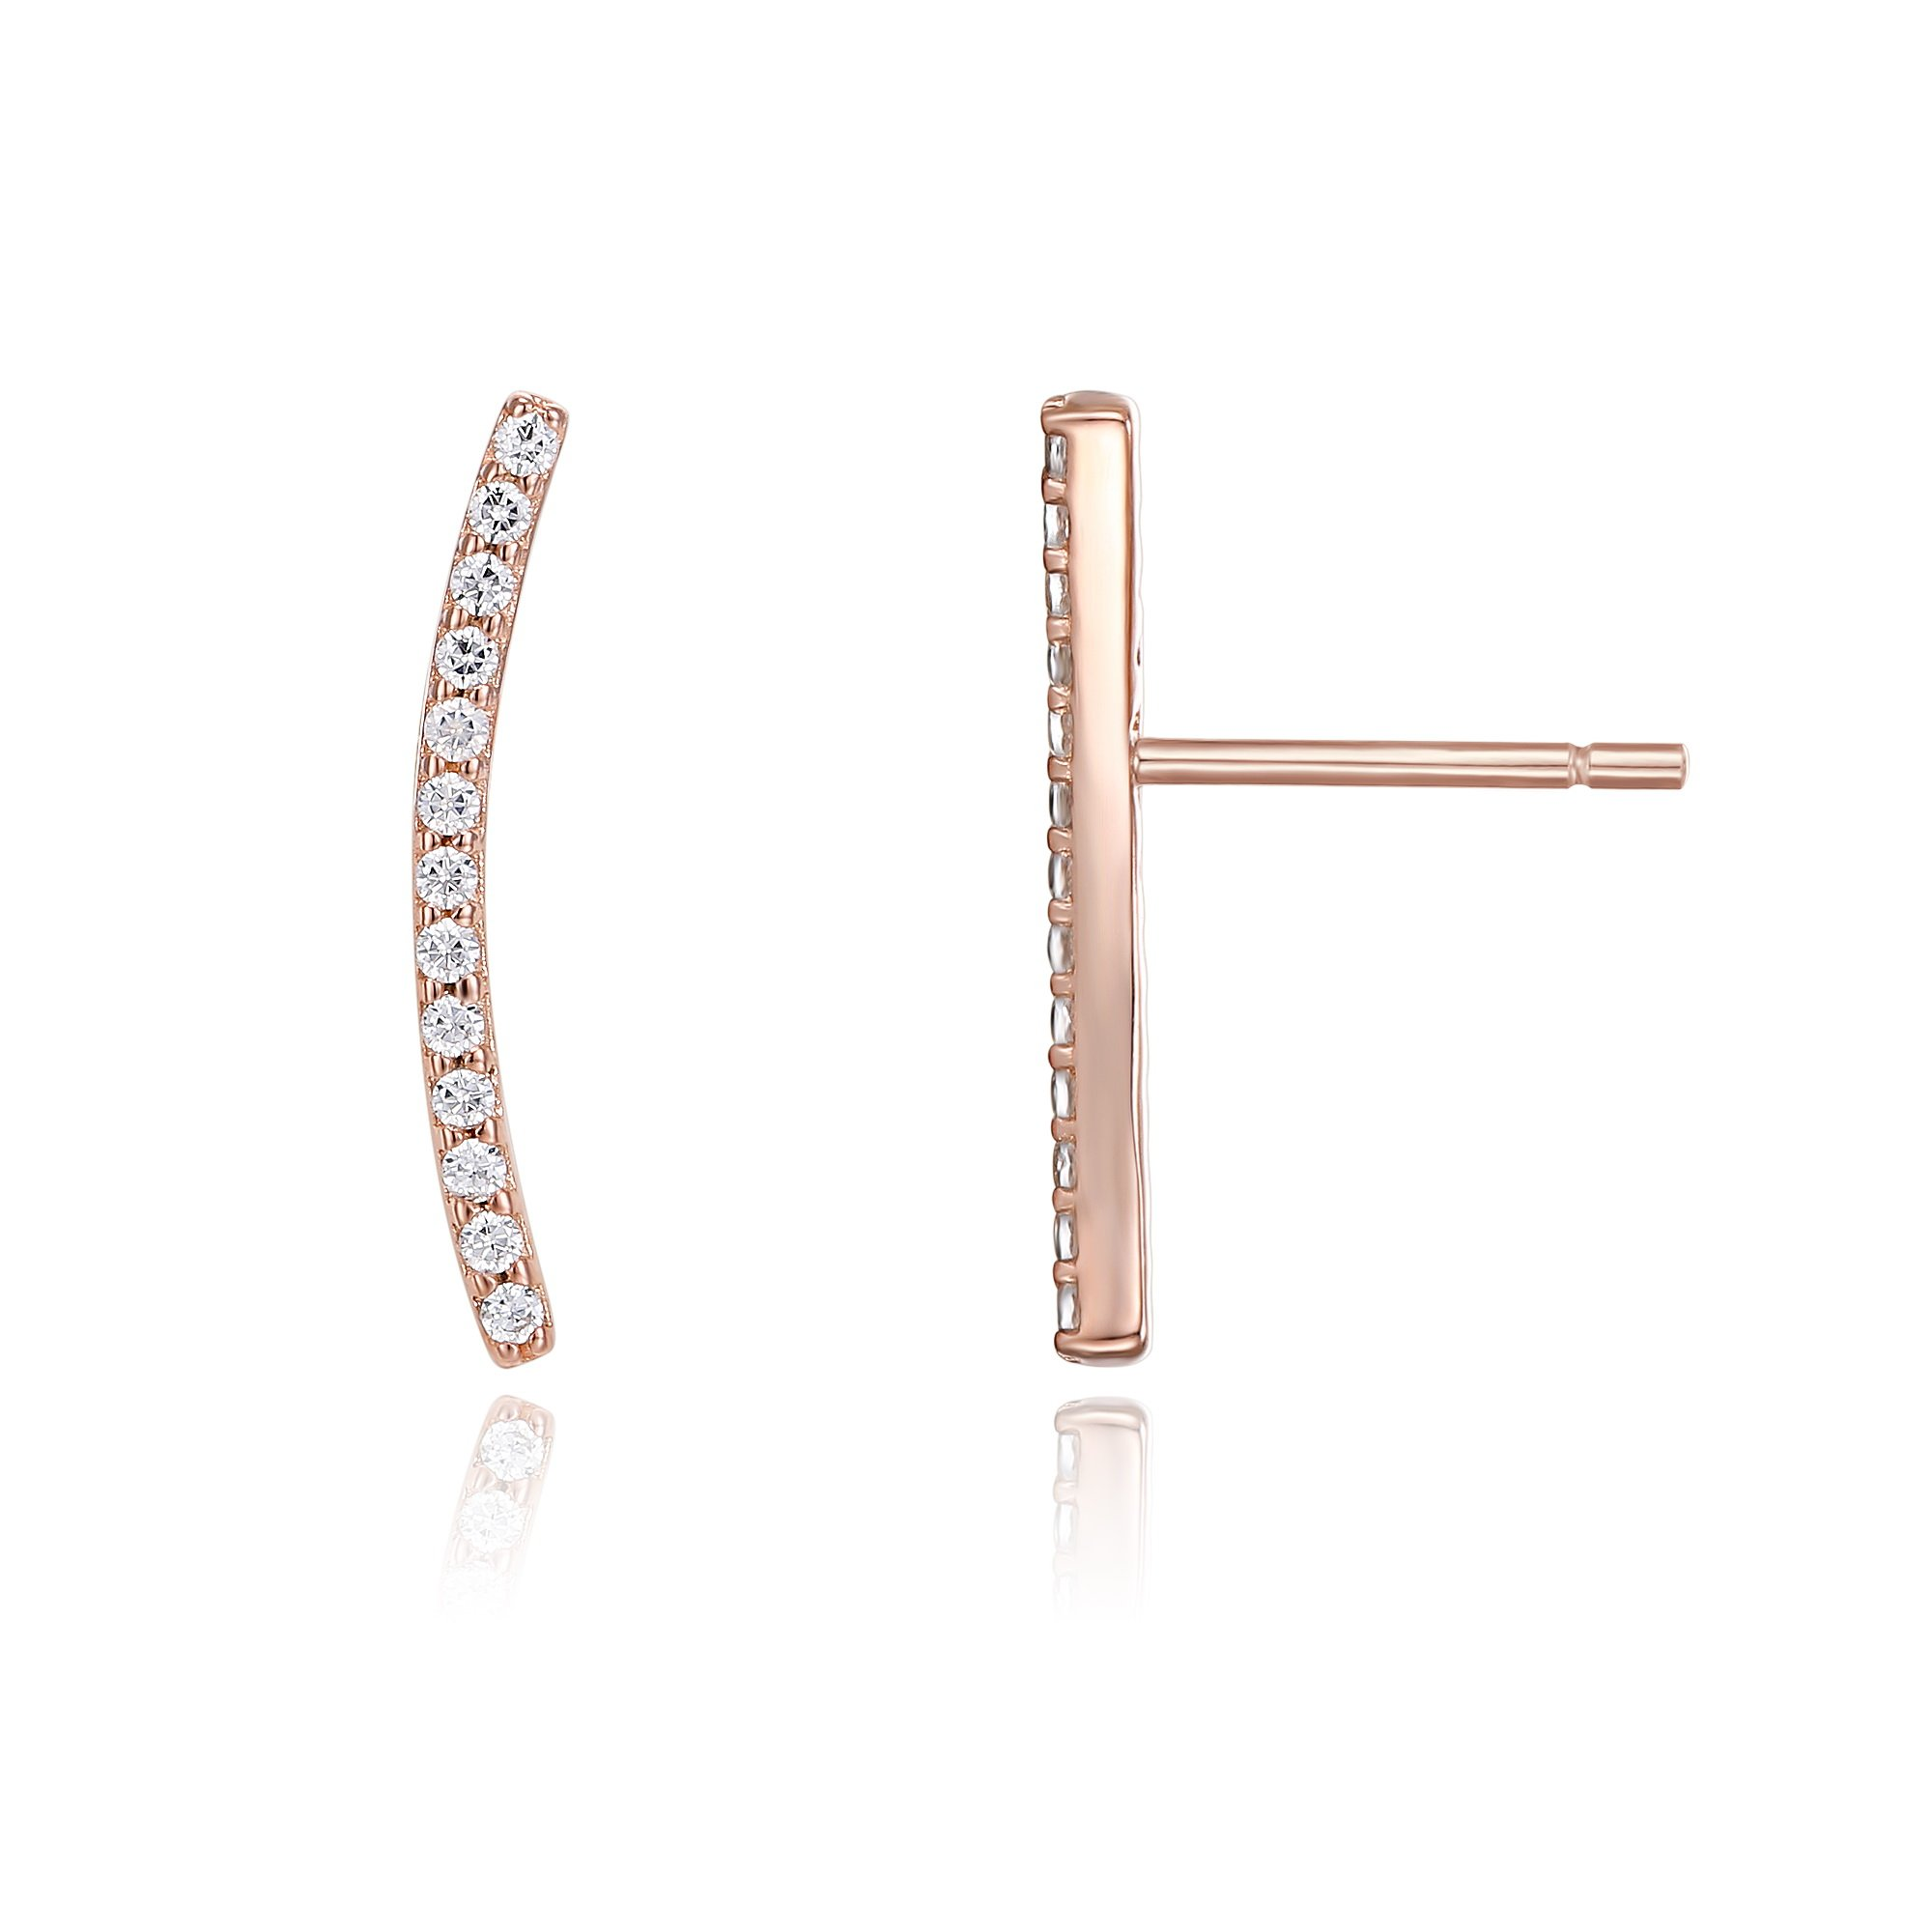 PAVOI 14K Gold Plated Ear Crawler - Cuff Earrings Hypoallergenic Sterling Silver Stud Ear Climber Jackets - Rose